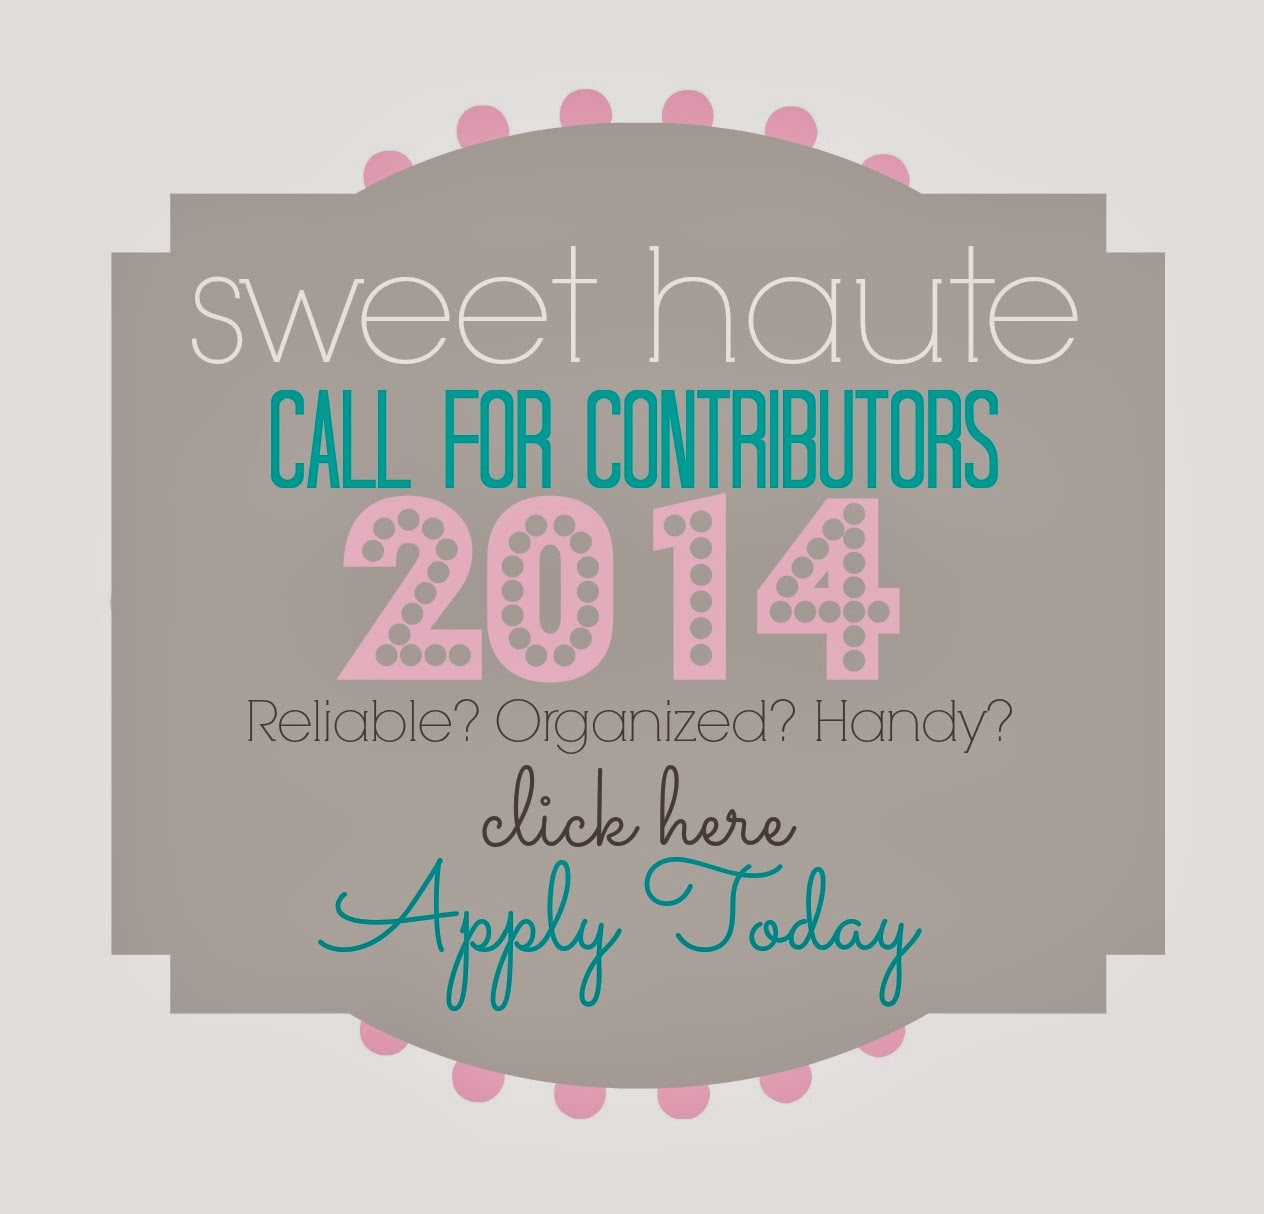 http://sweethaute.blogspot.com/2014/03/sweet-haute-call-for-contributors-2014.html